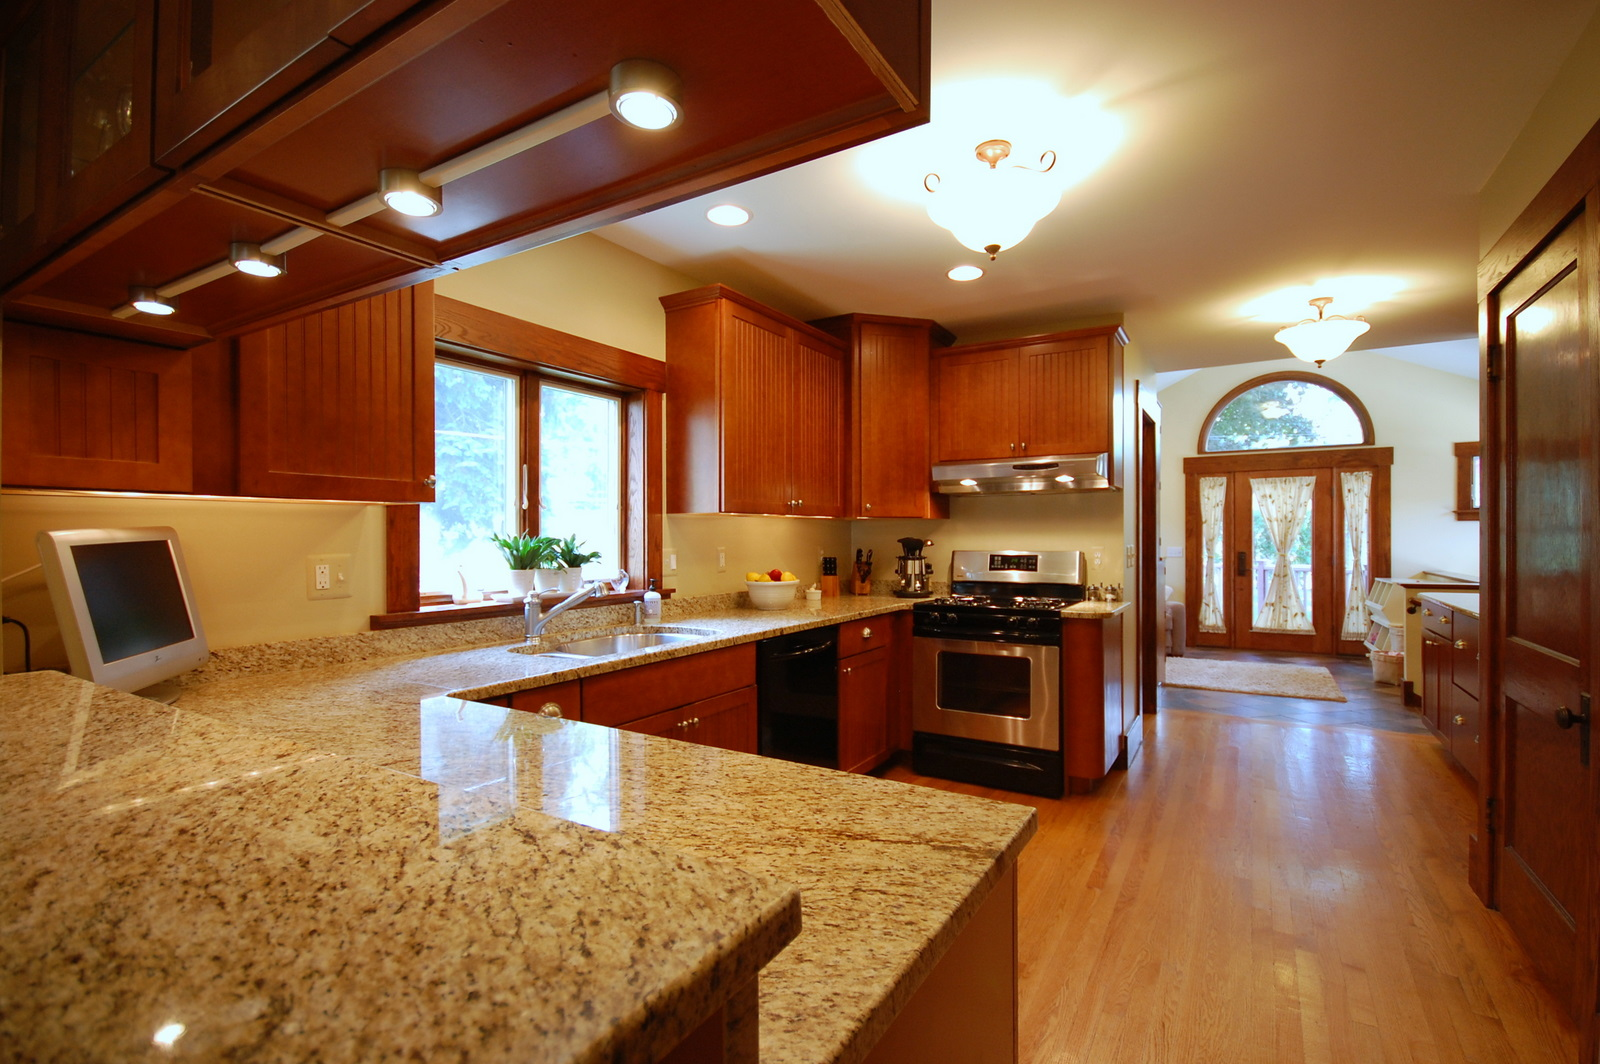 Granite installation jmarvinhandyman for Granite countertop design ideas